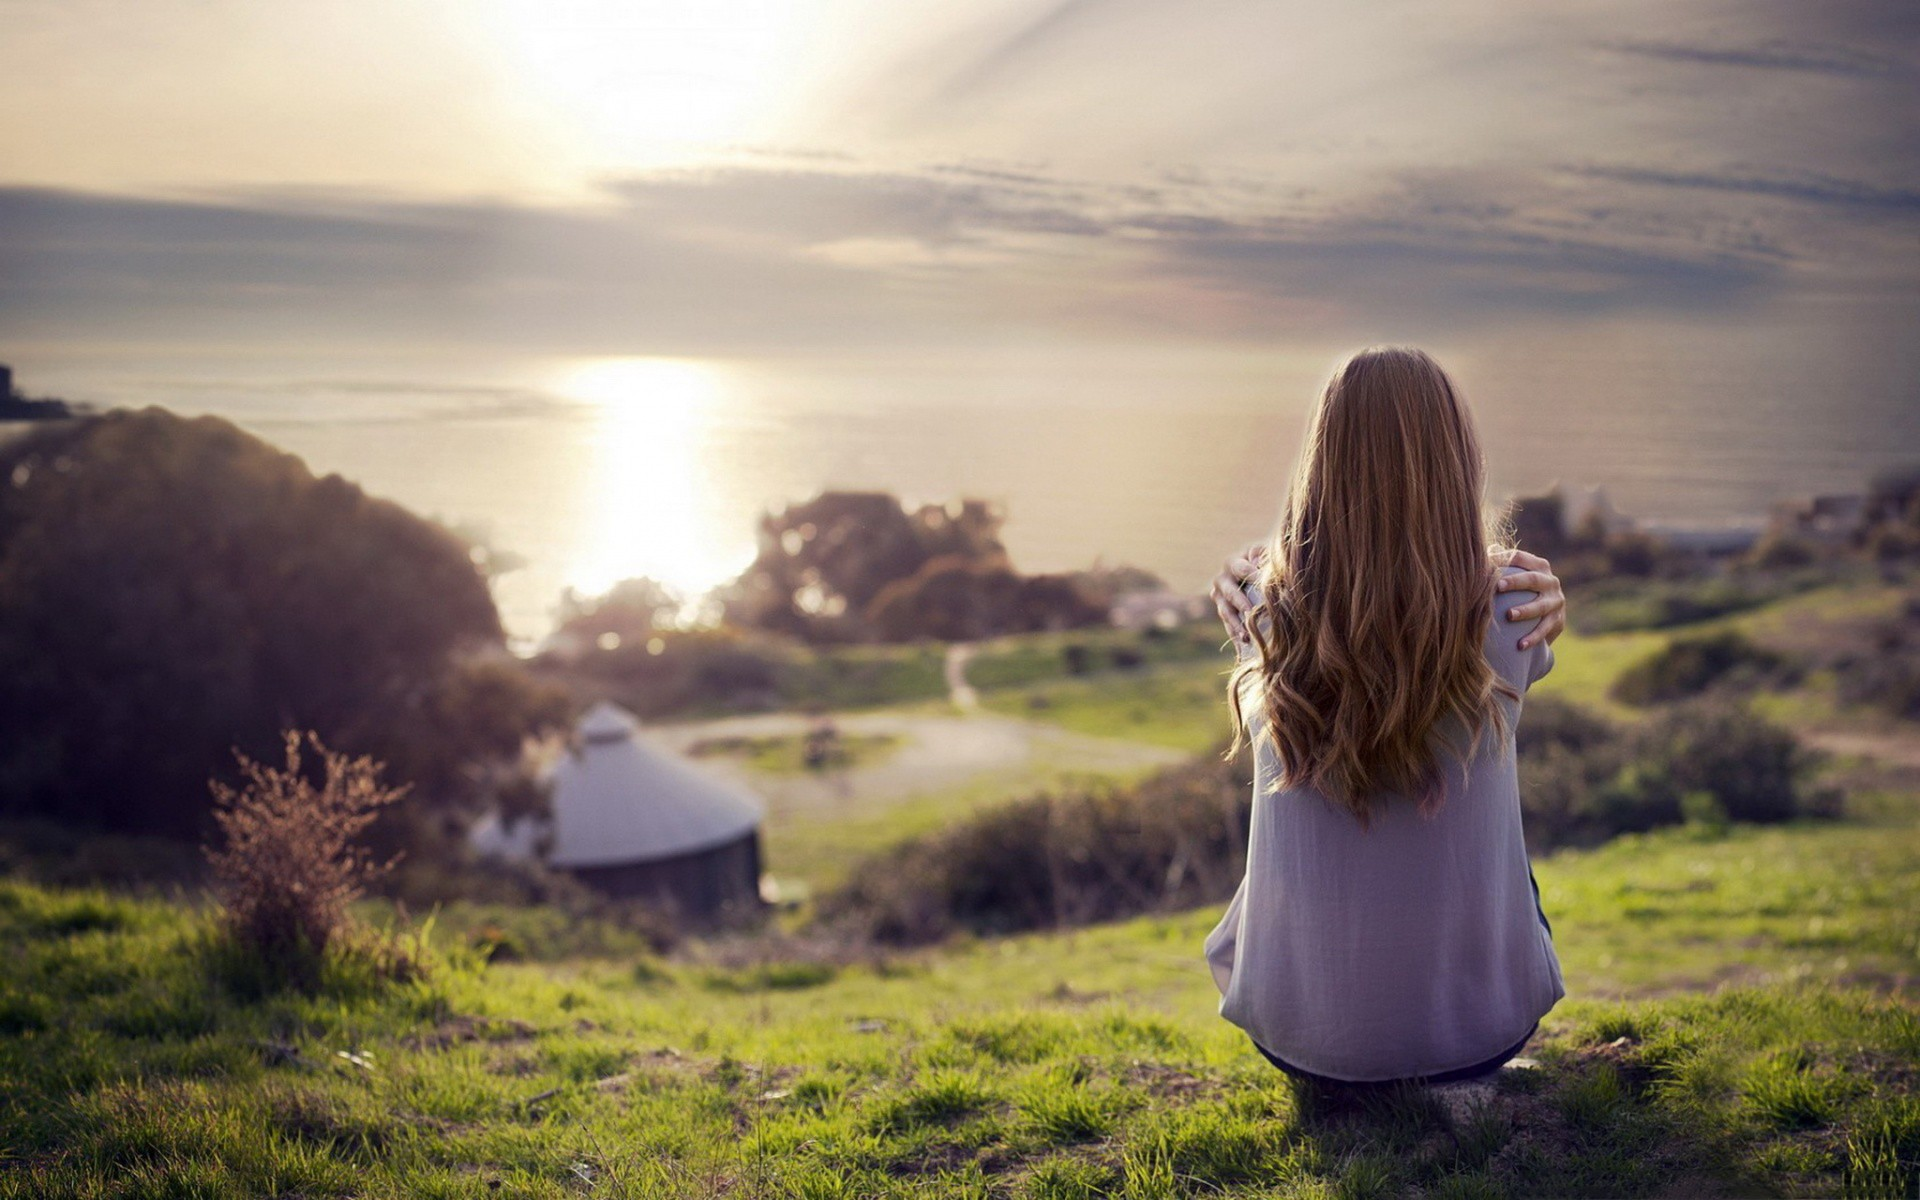 Girl Whit Long Hair In A Beautiful Landscape Wallpapers Girl Whit Long Hair In A Beautiful Landscape Stock Photos